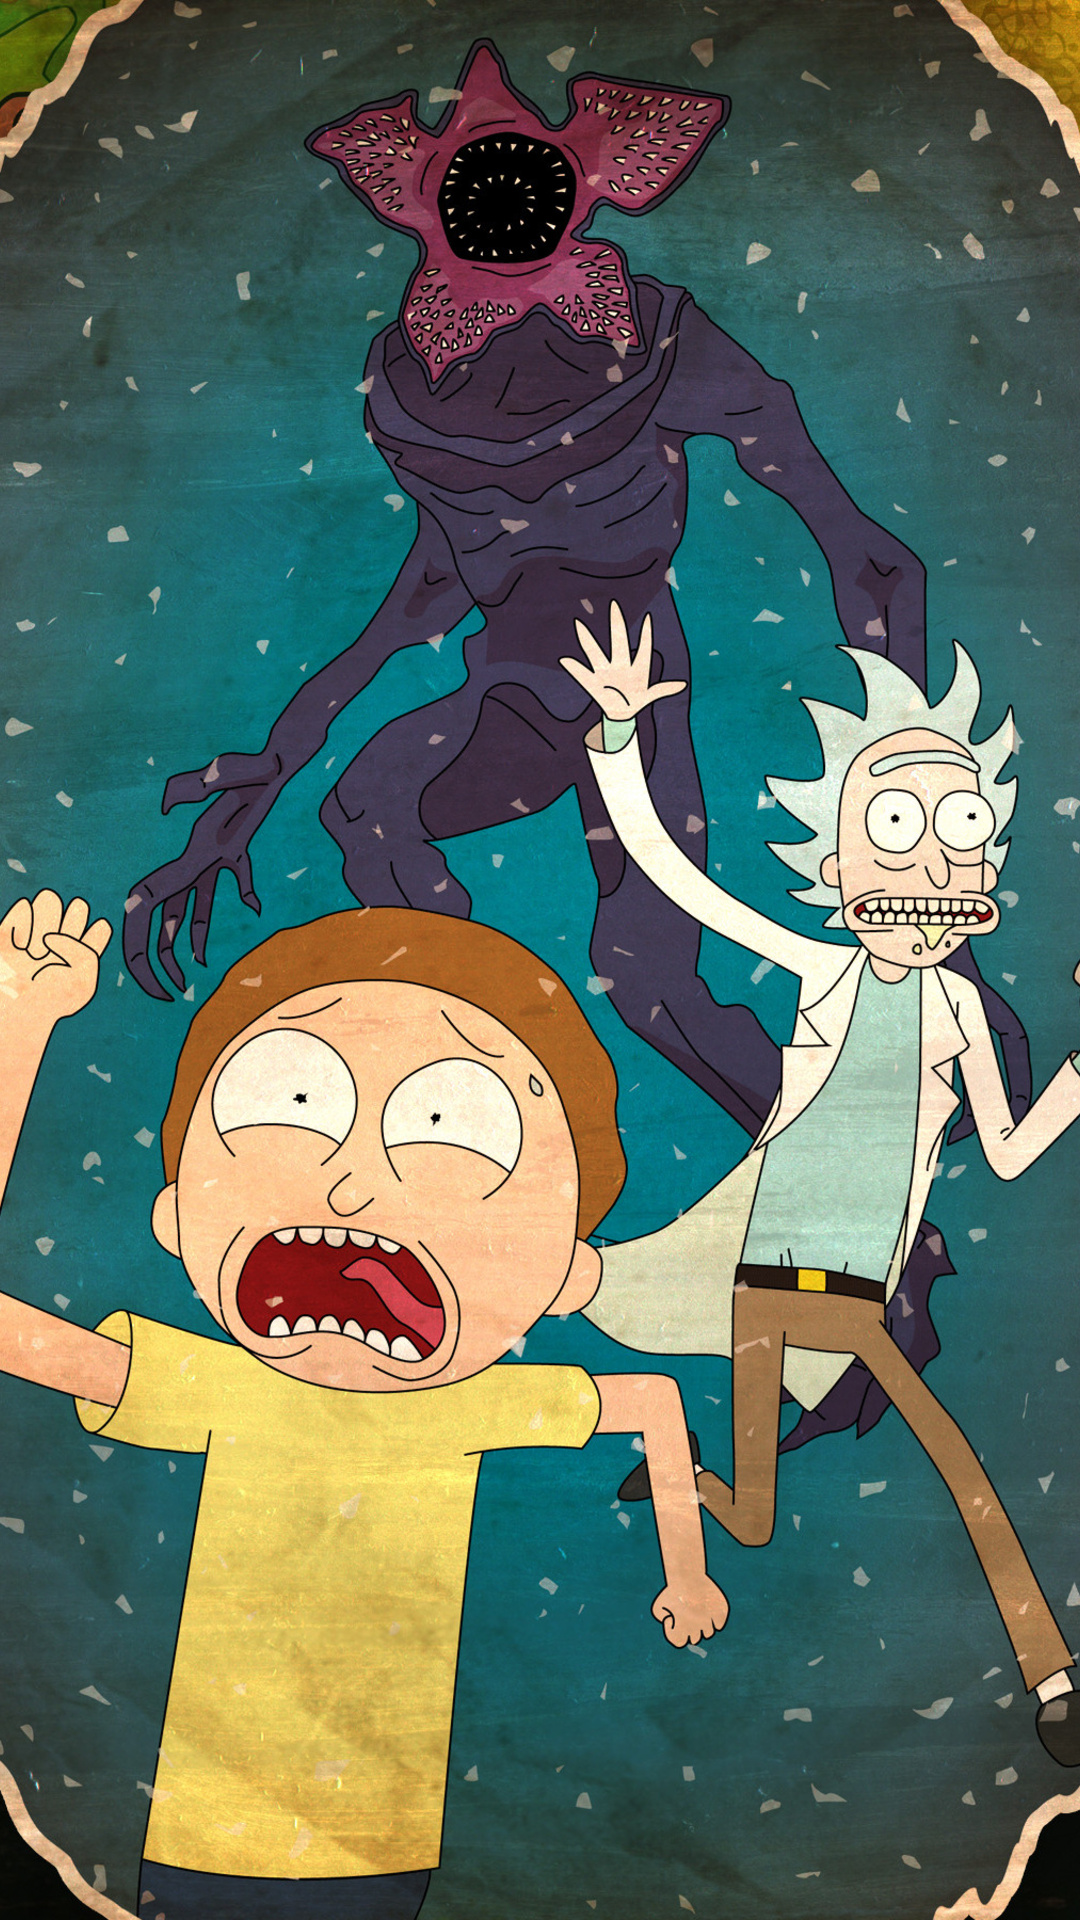 1080x1920 Rick And Morty 4k Iphone 7,6s,6 Plus, Pixel xl ...